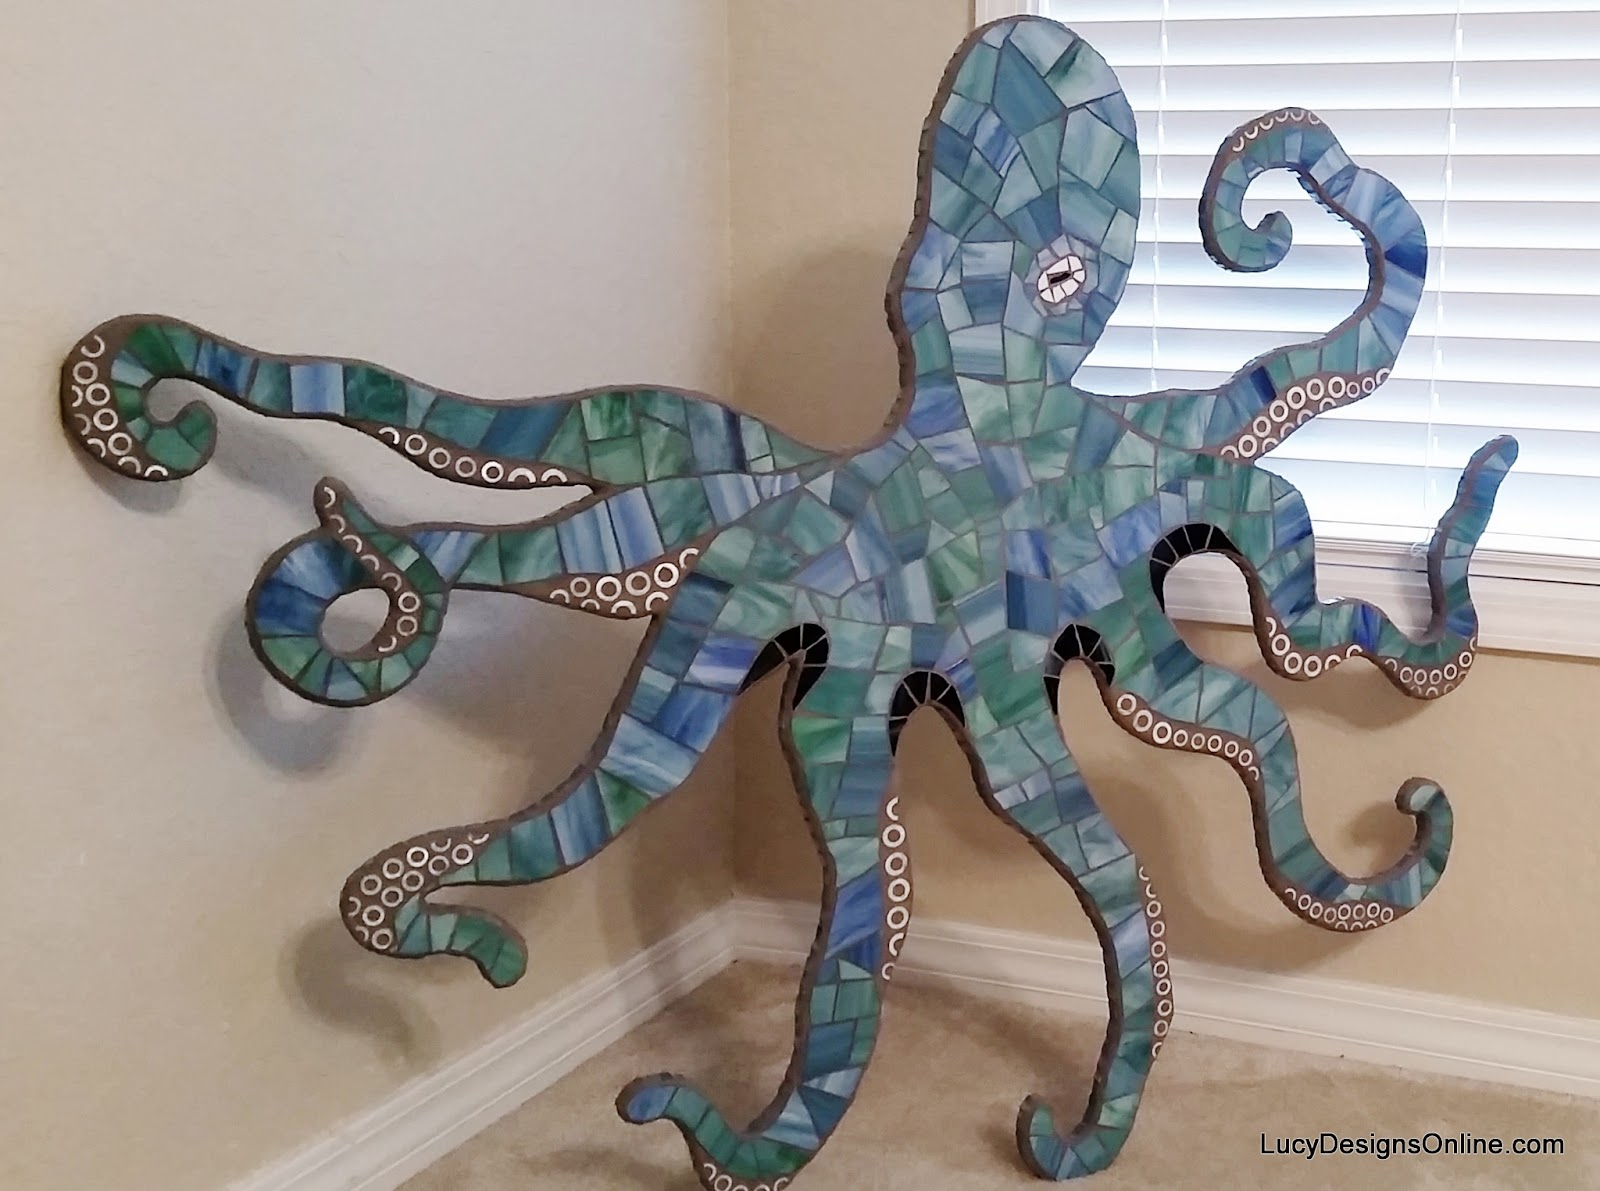 mosaic octopus art